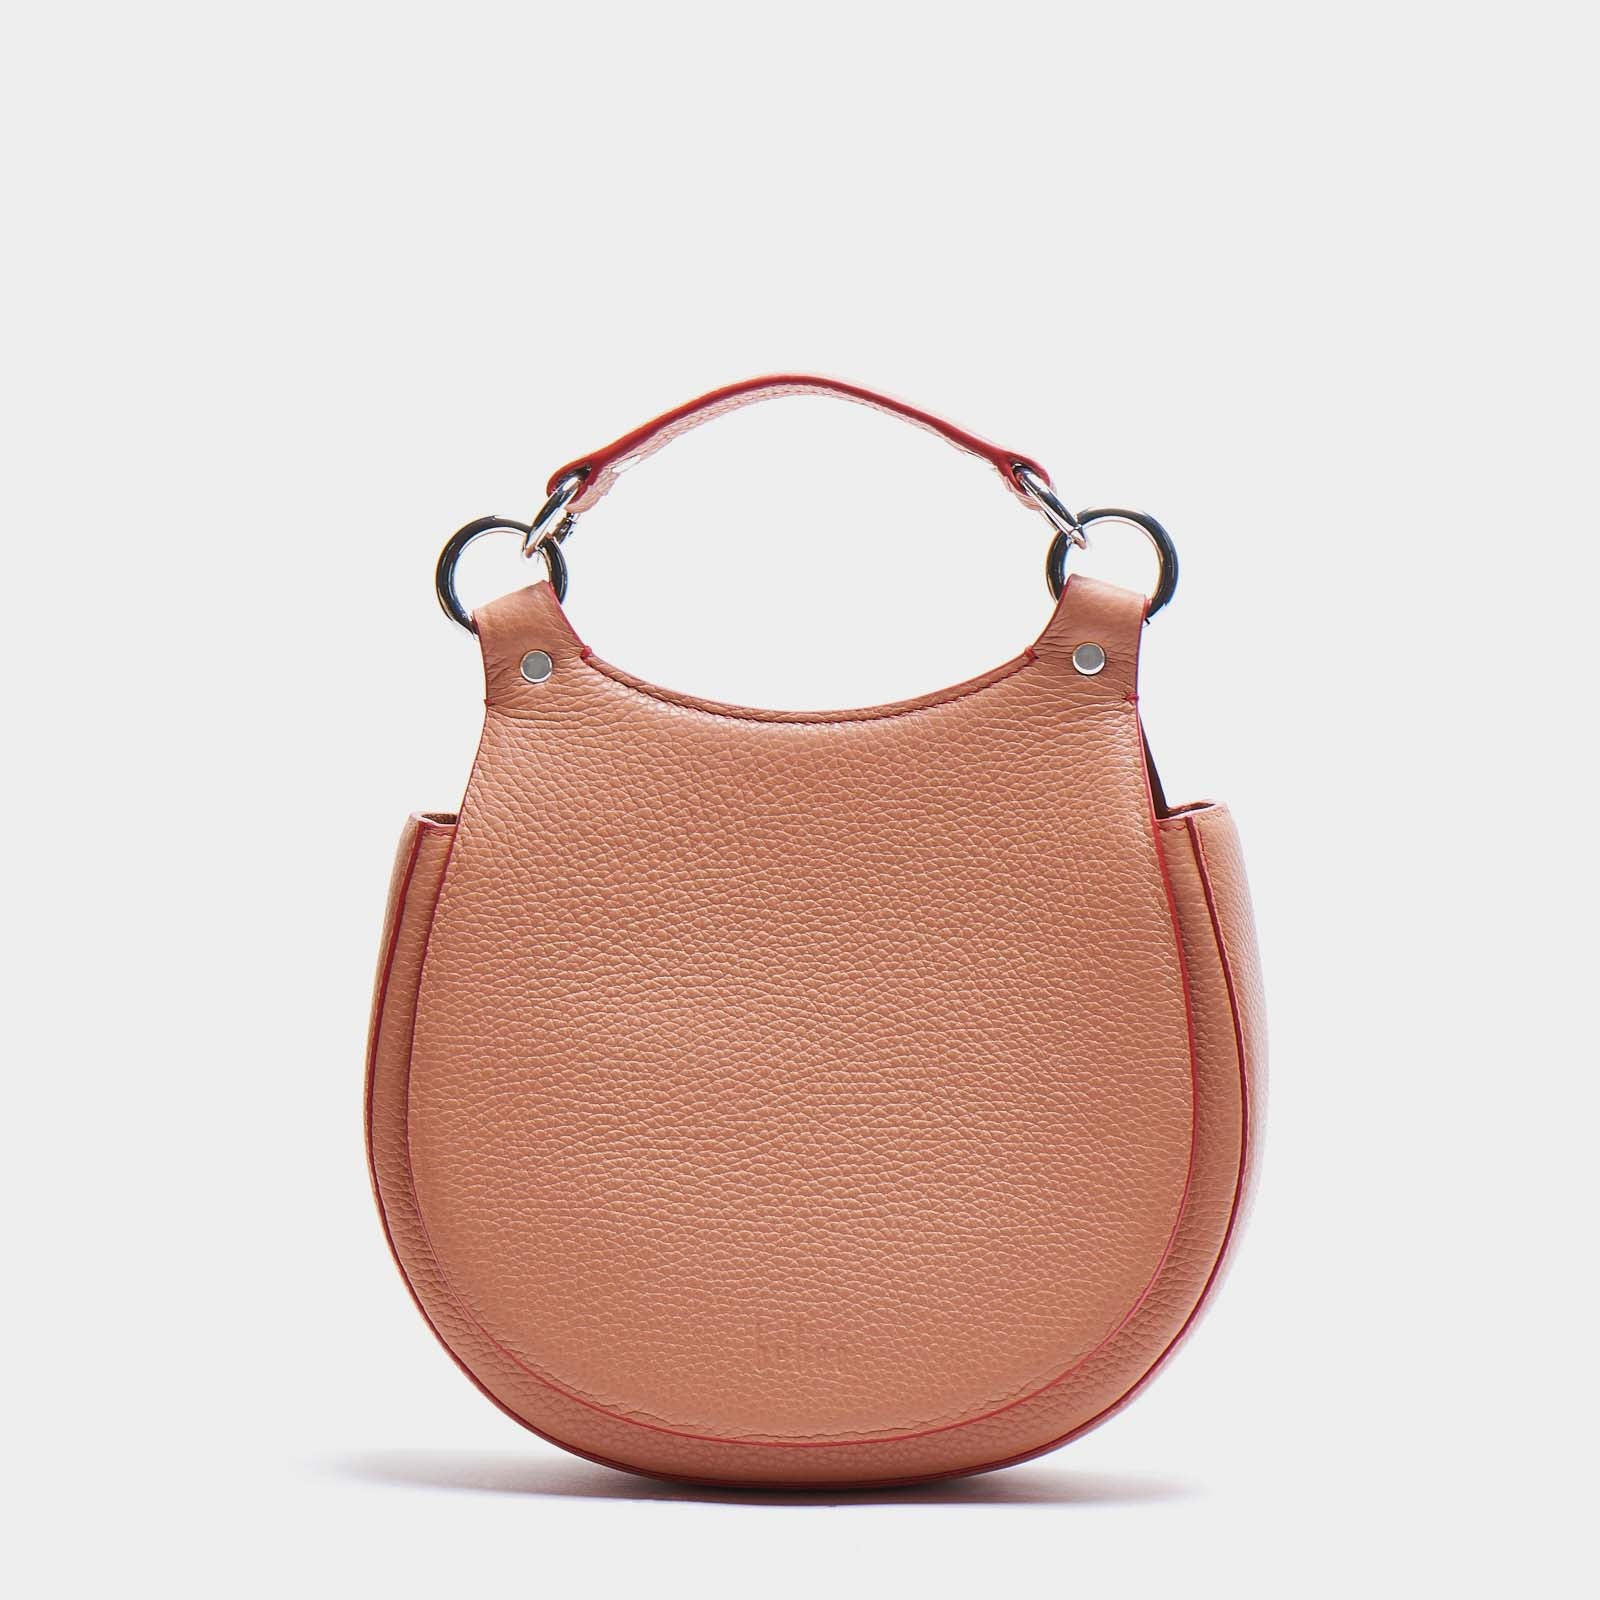 TILDA SADDLE BAG PEBBLE APRICOT/RED